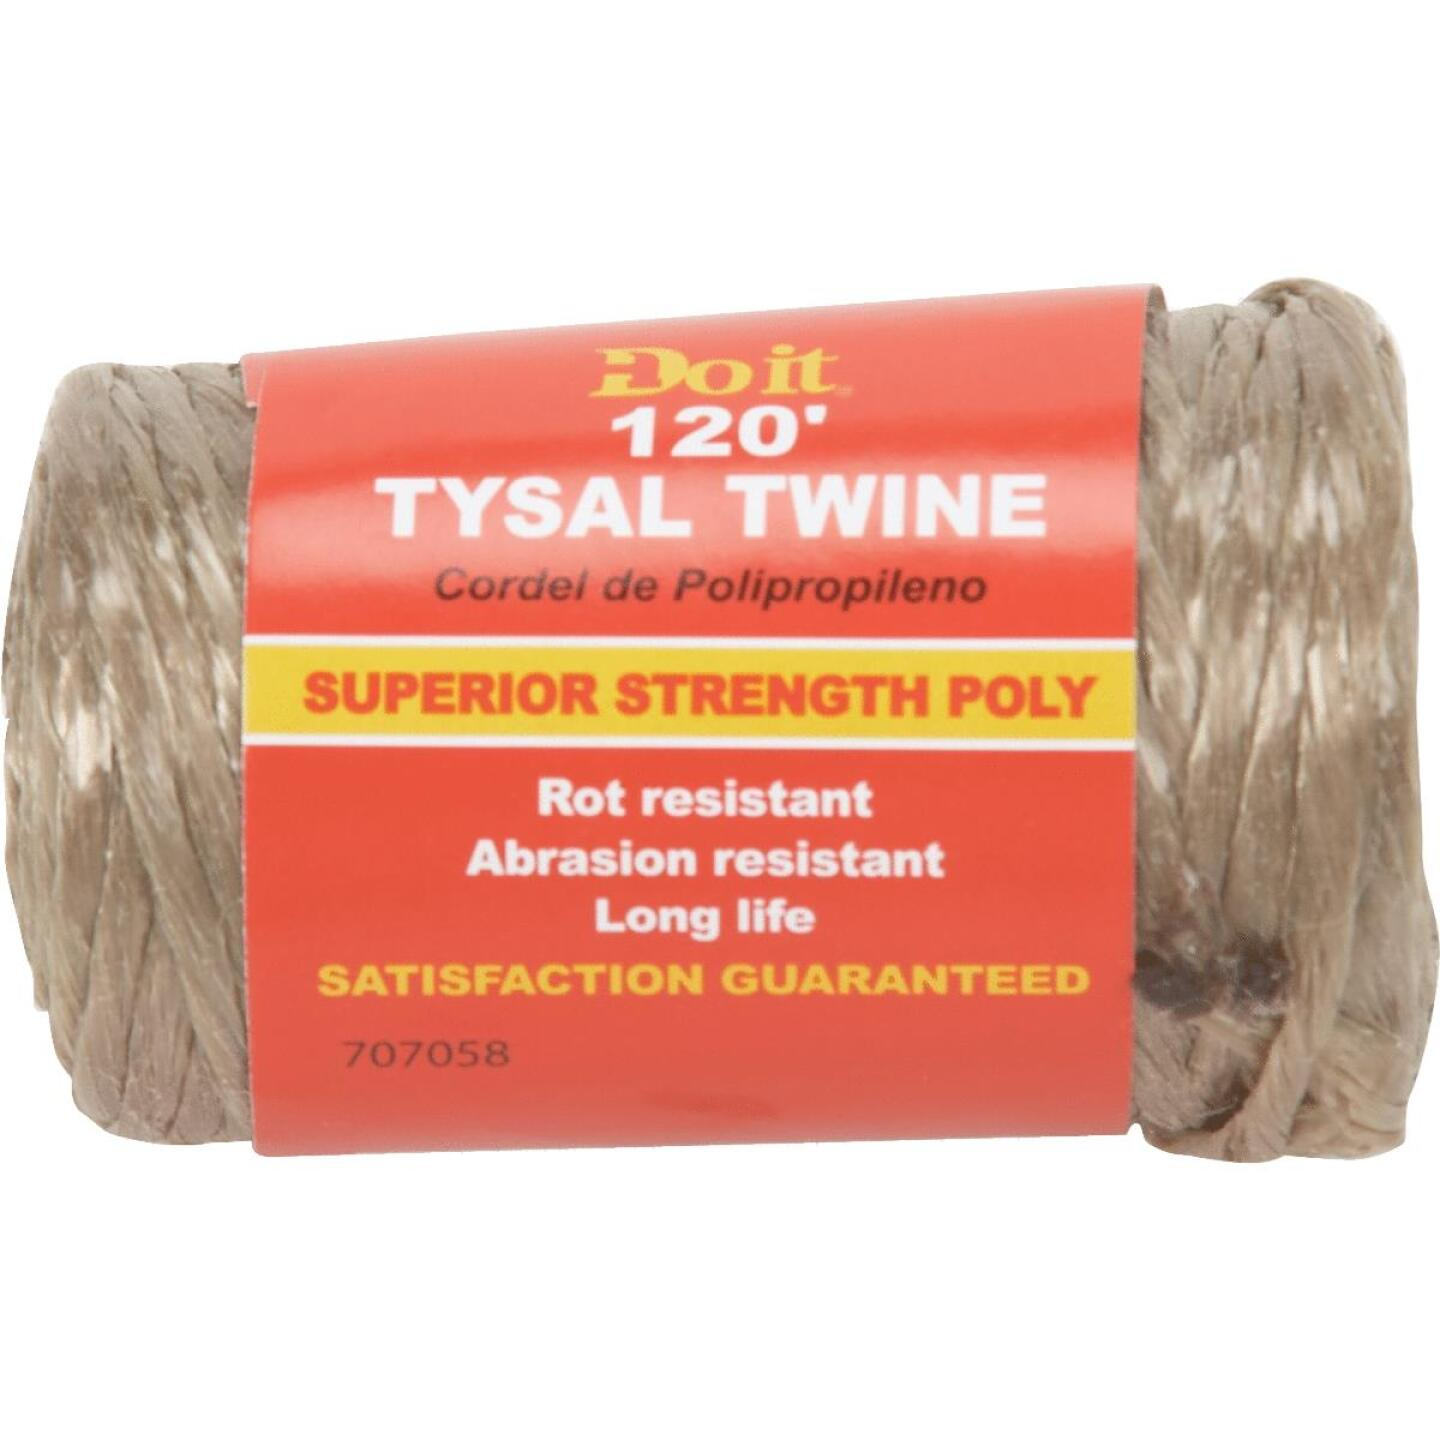 Do it 5/64 In. x 120 Ft. Brown Polypropylene Tysal Twine Image 1